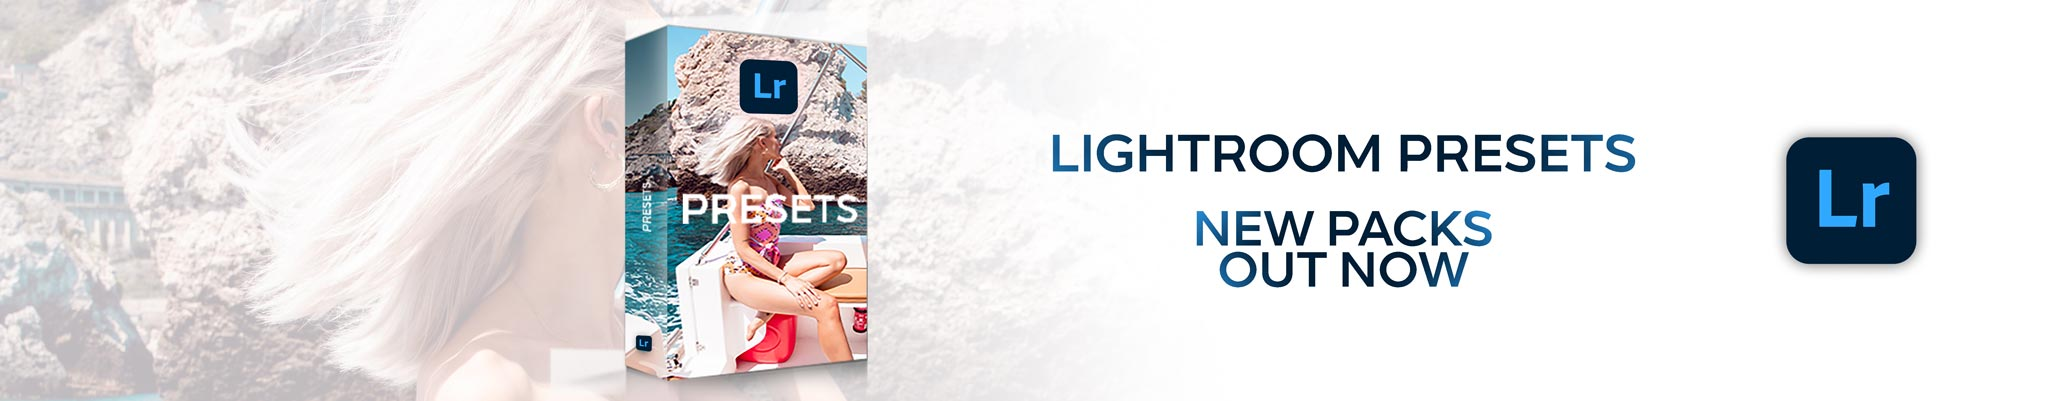 Lightroom Presets now available